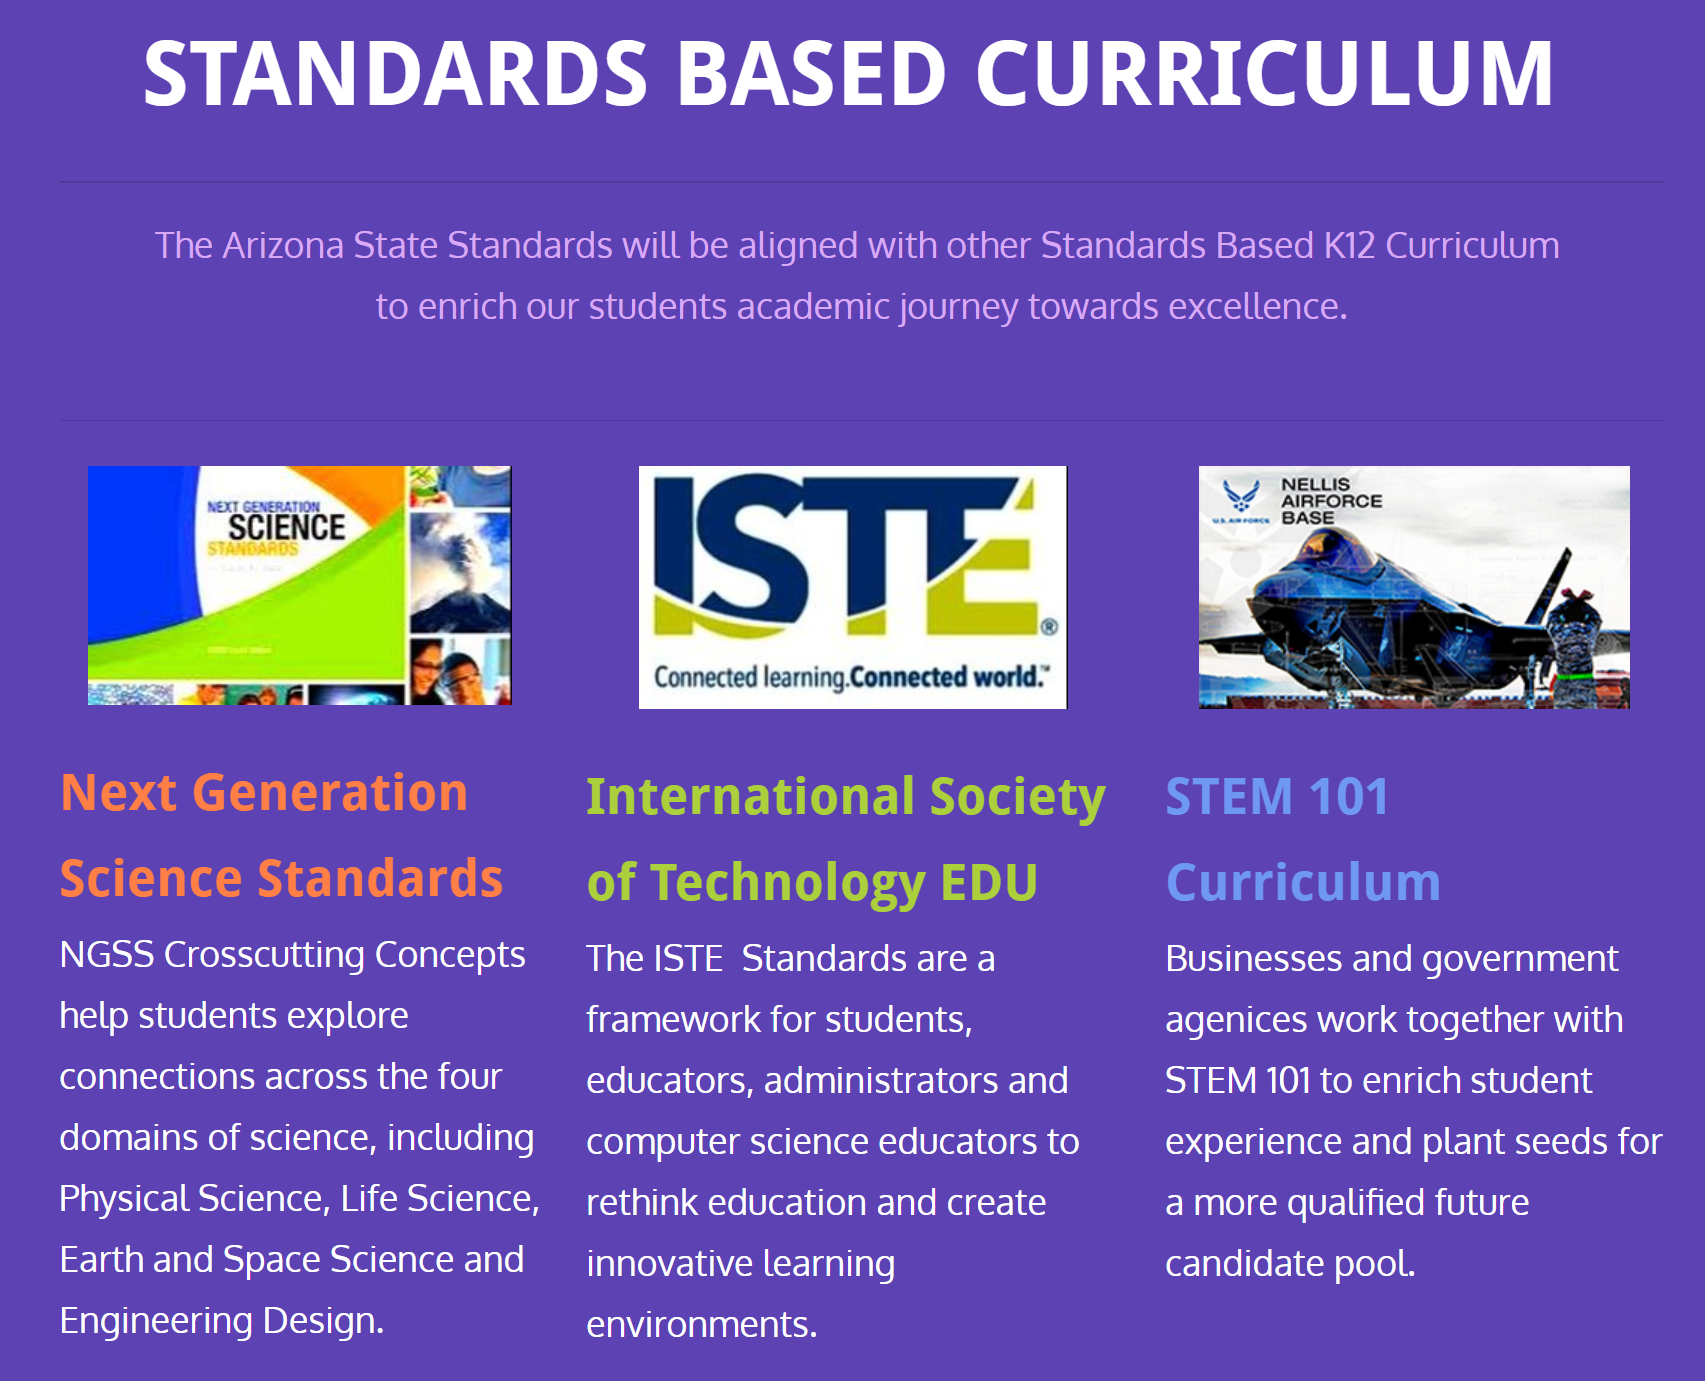 jcs_standards_based_curric.png